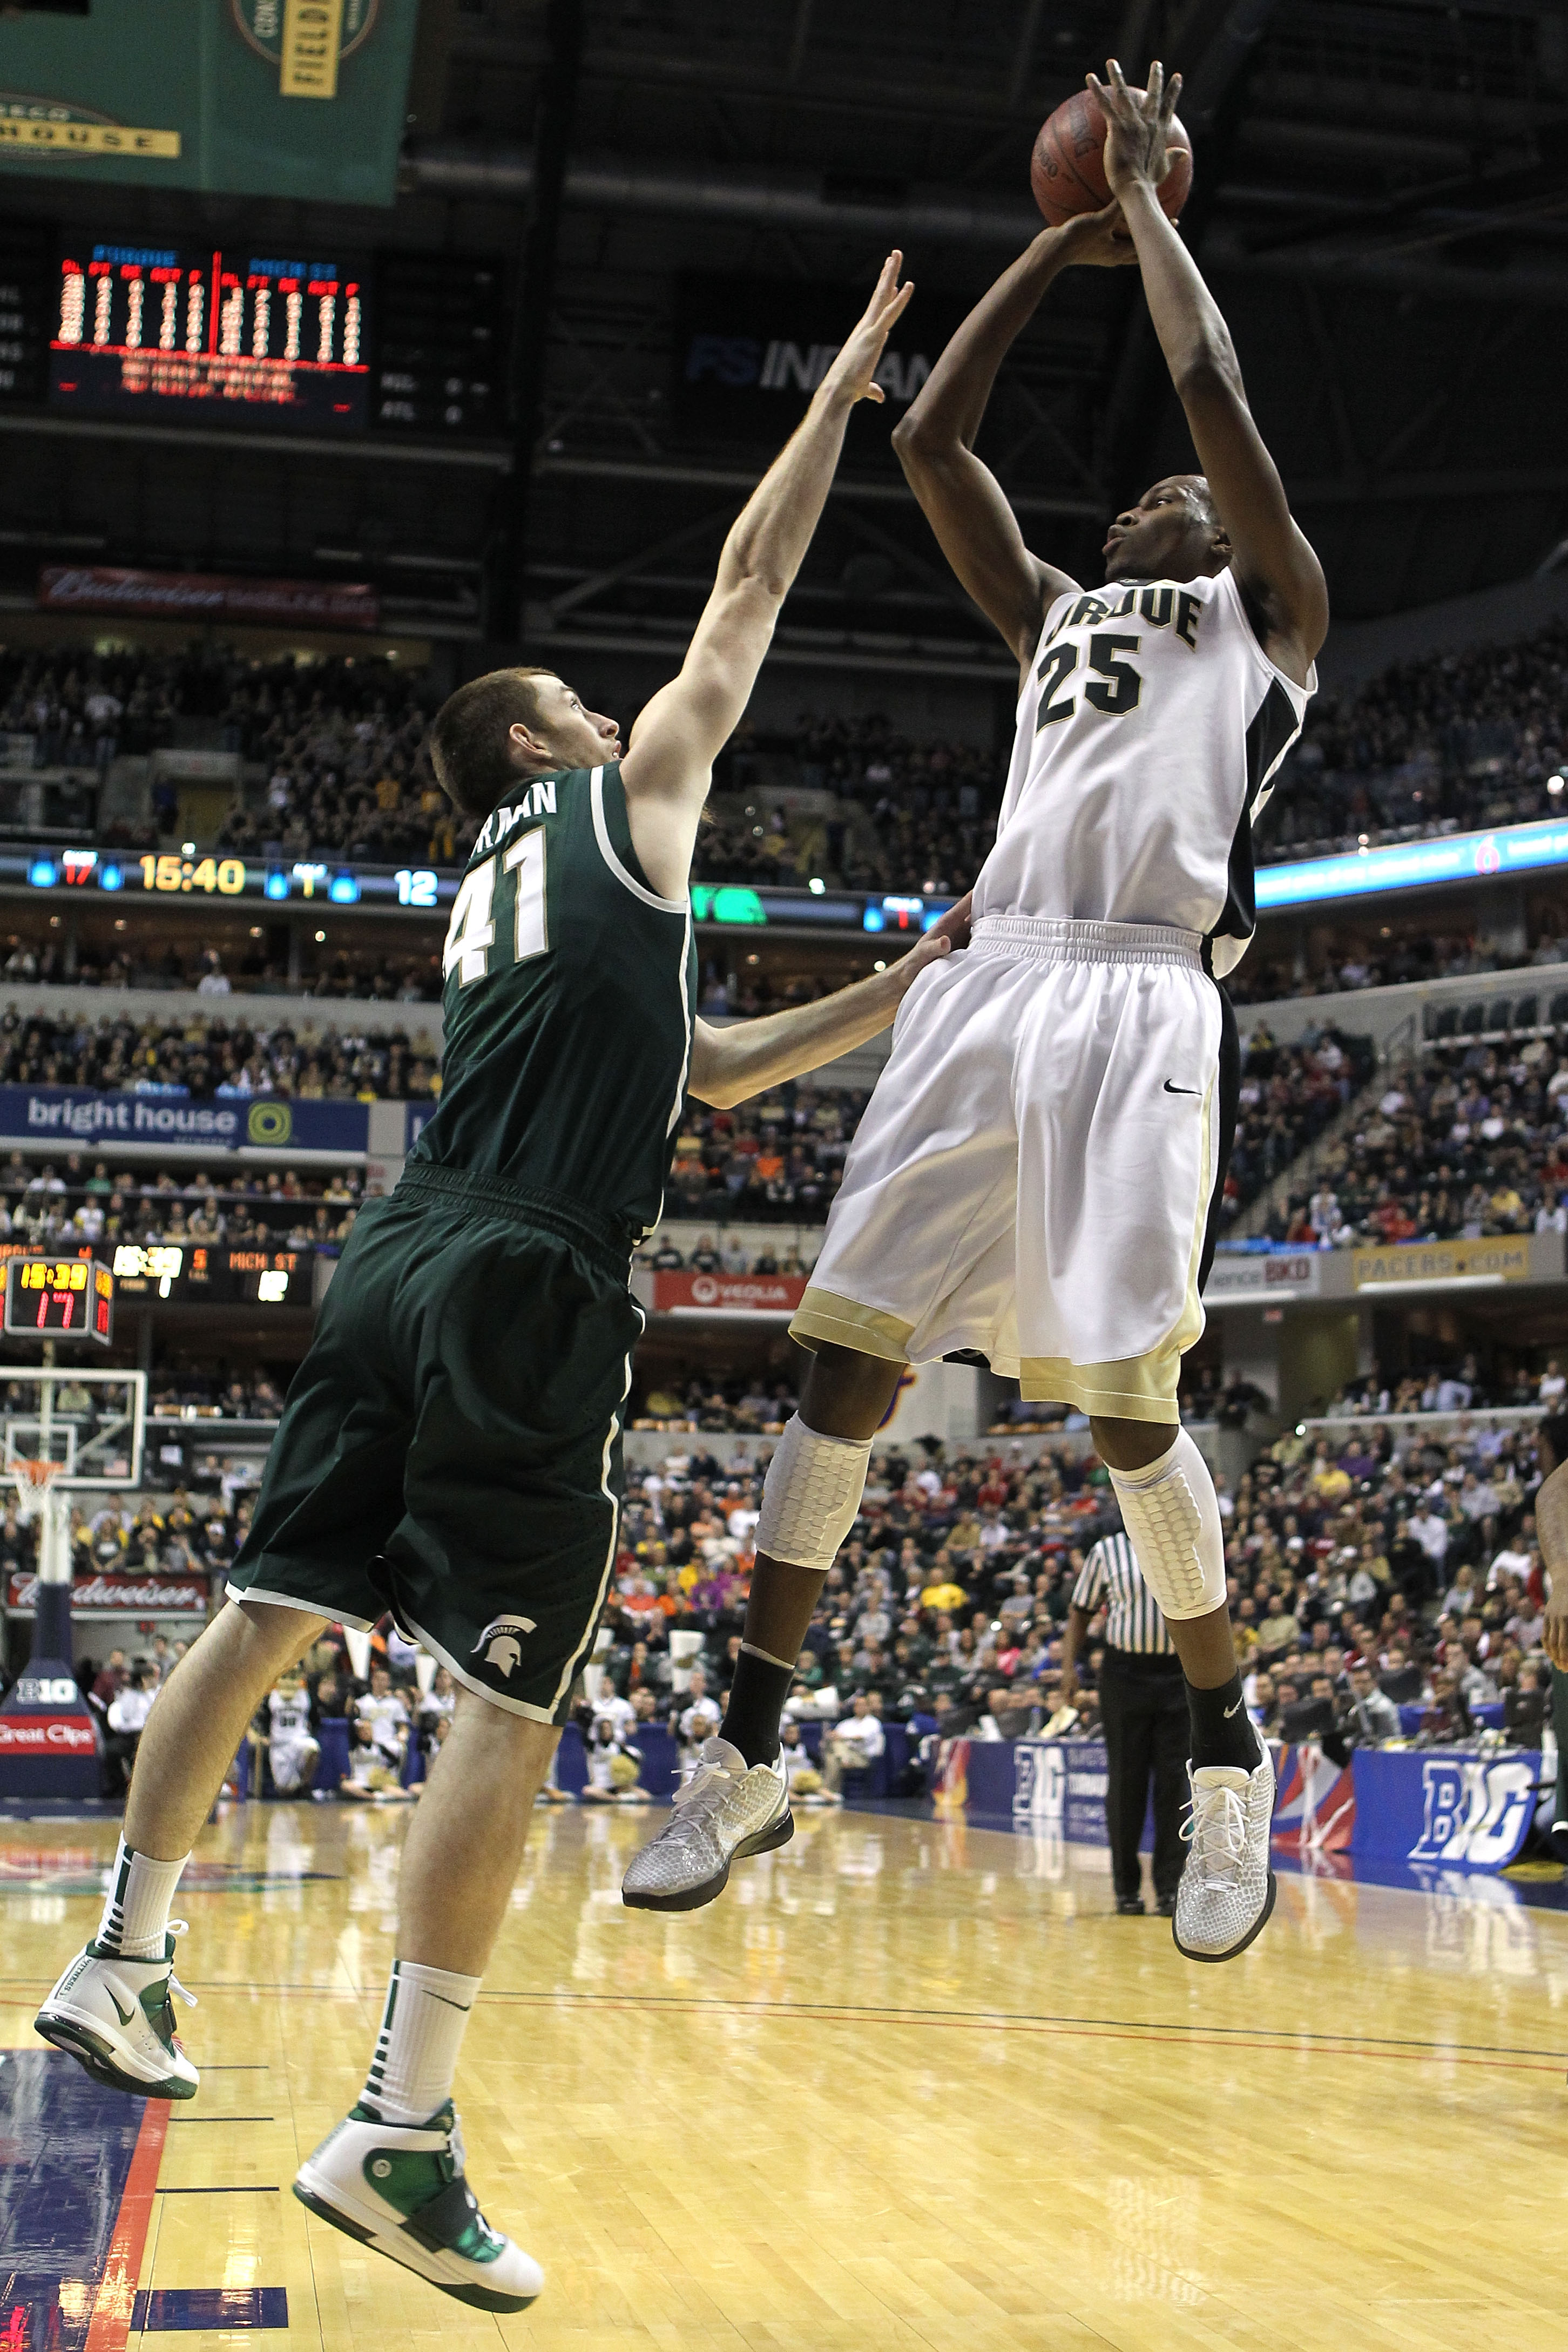 INDIANAPOLIS, IN - MARCH 11:  JaJuan Johnson #25 of the Purdue Boilermakers attempts a shot against Garrick Sherman #41 of the Michigan State Spartans during the quarterfinals of the 2011 Big Ten Men's Basketball Tournament at Conseco Fieldhouse on March